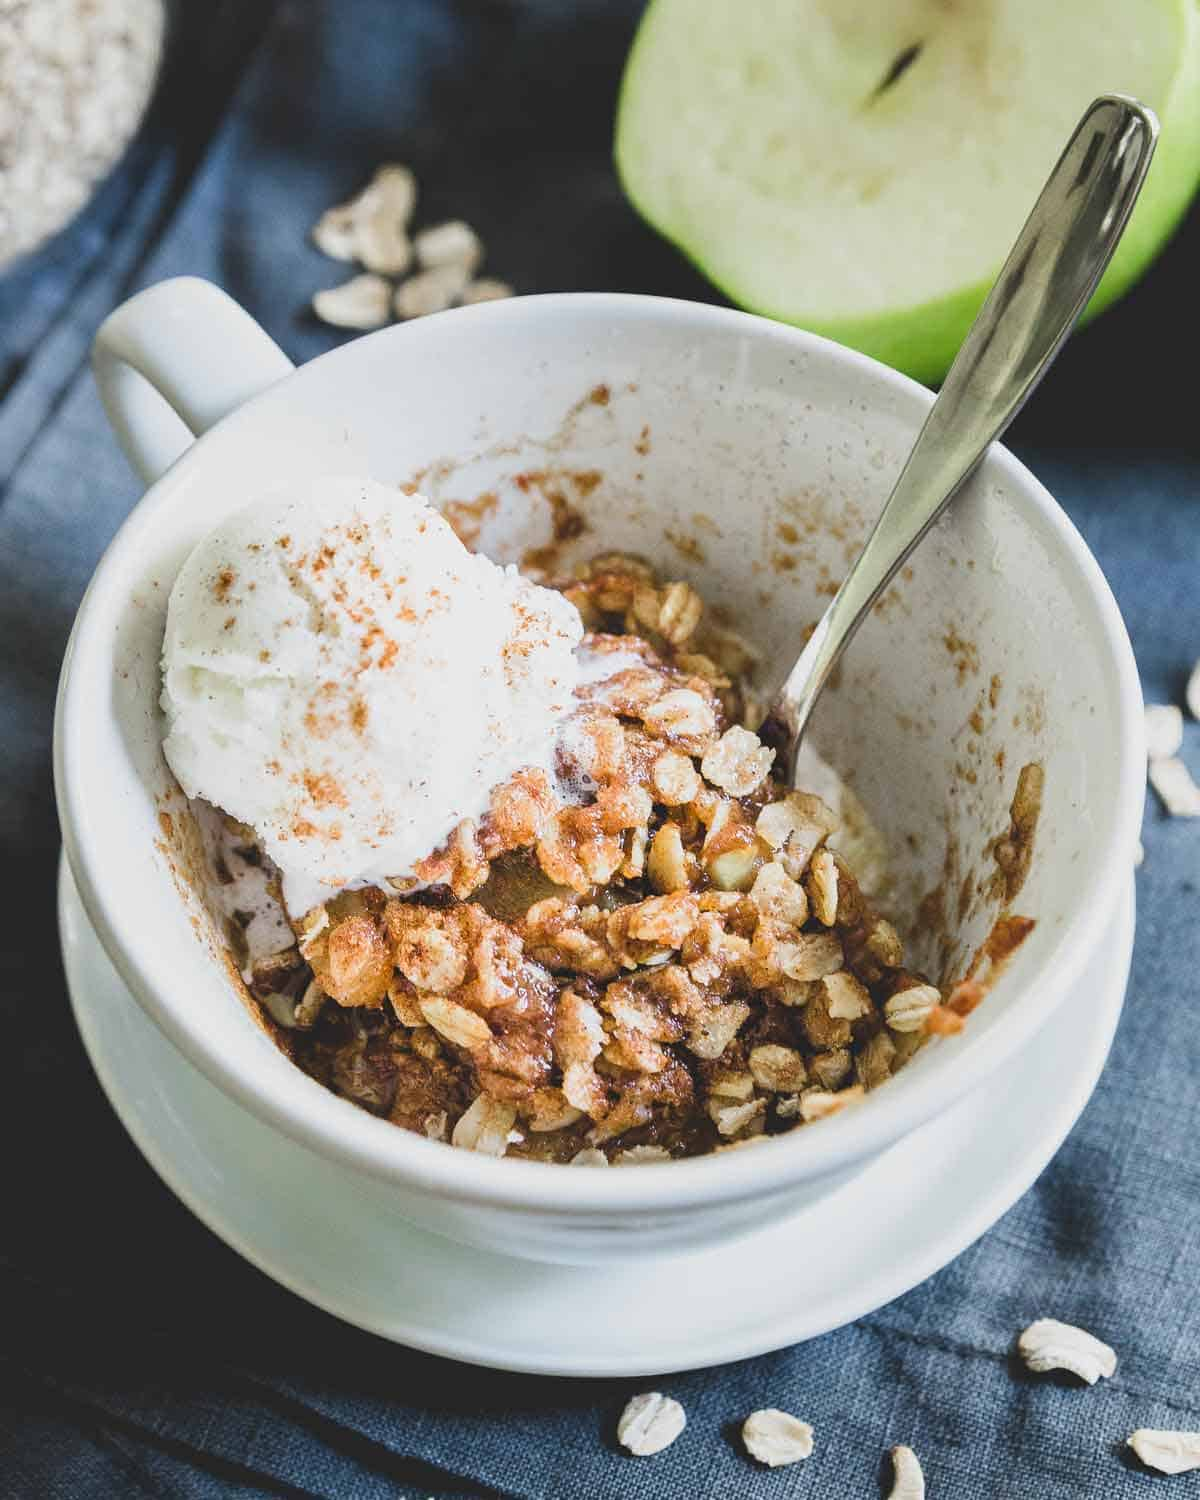 This easy microwave apple crisp recipe is a quick single serve option when you need a delicious fall dessert in minutes. Top with a scoop of ice cream or some whipped cream and enjoy!